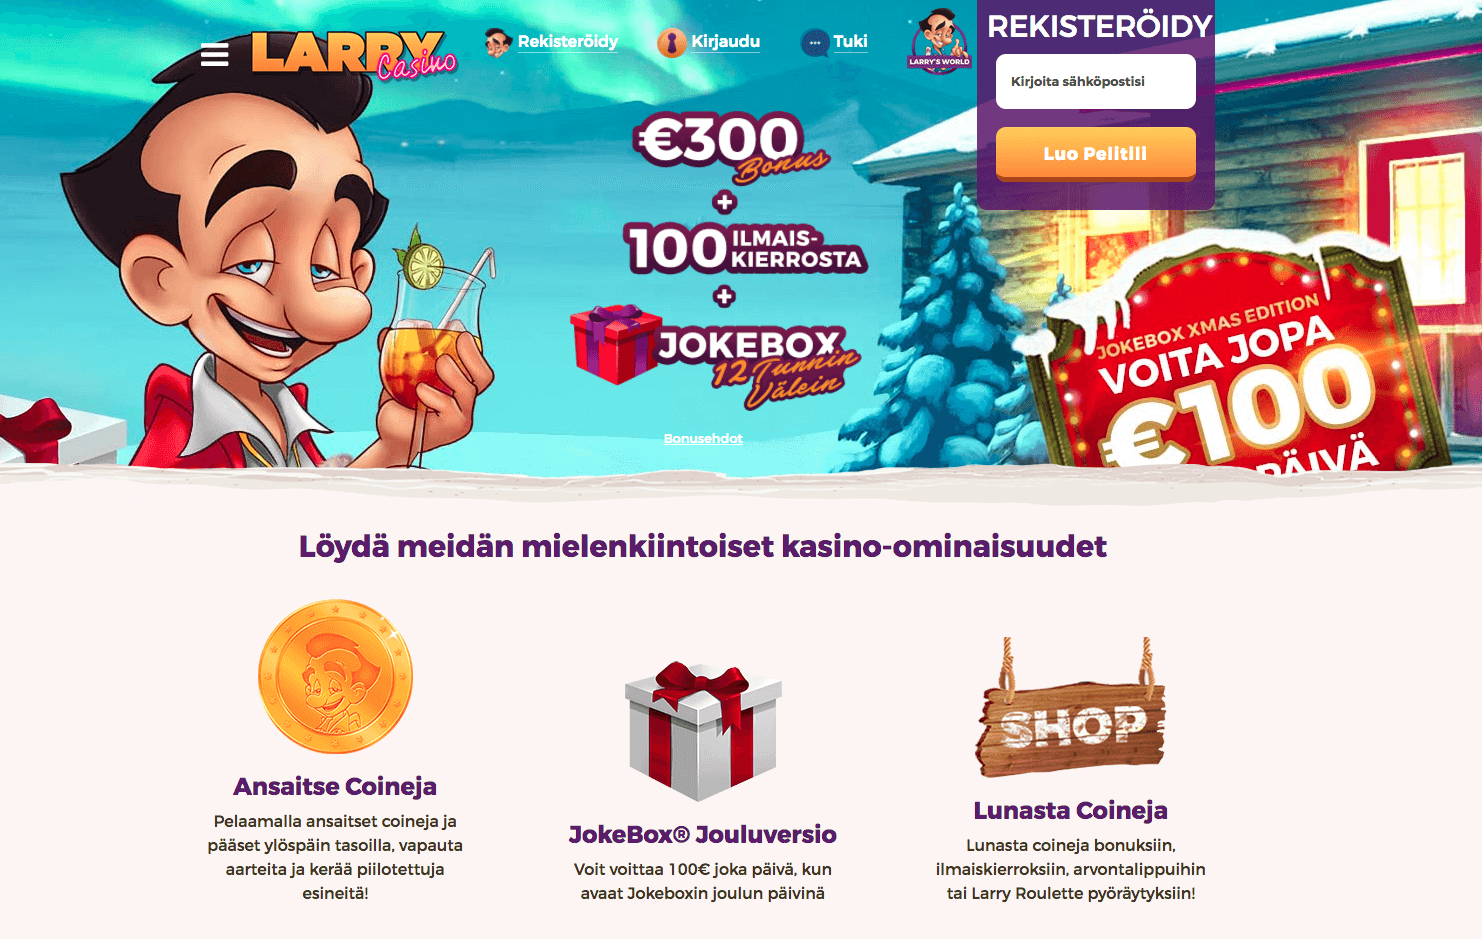 Larry Casinon joulukampanja